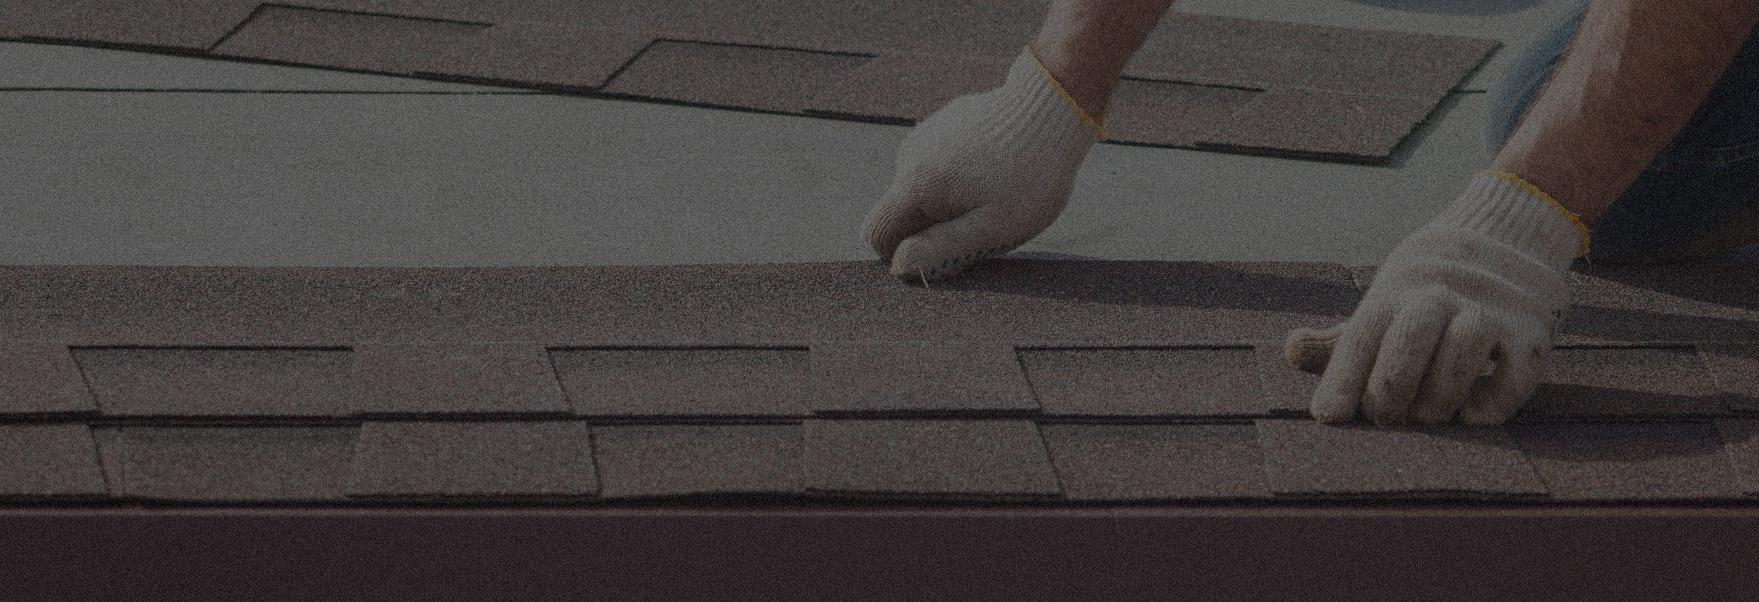 duck back roofing & exteriors banner peachtree city, ga